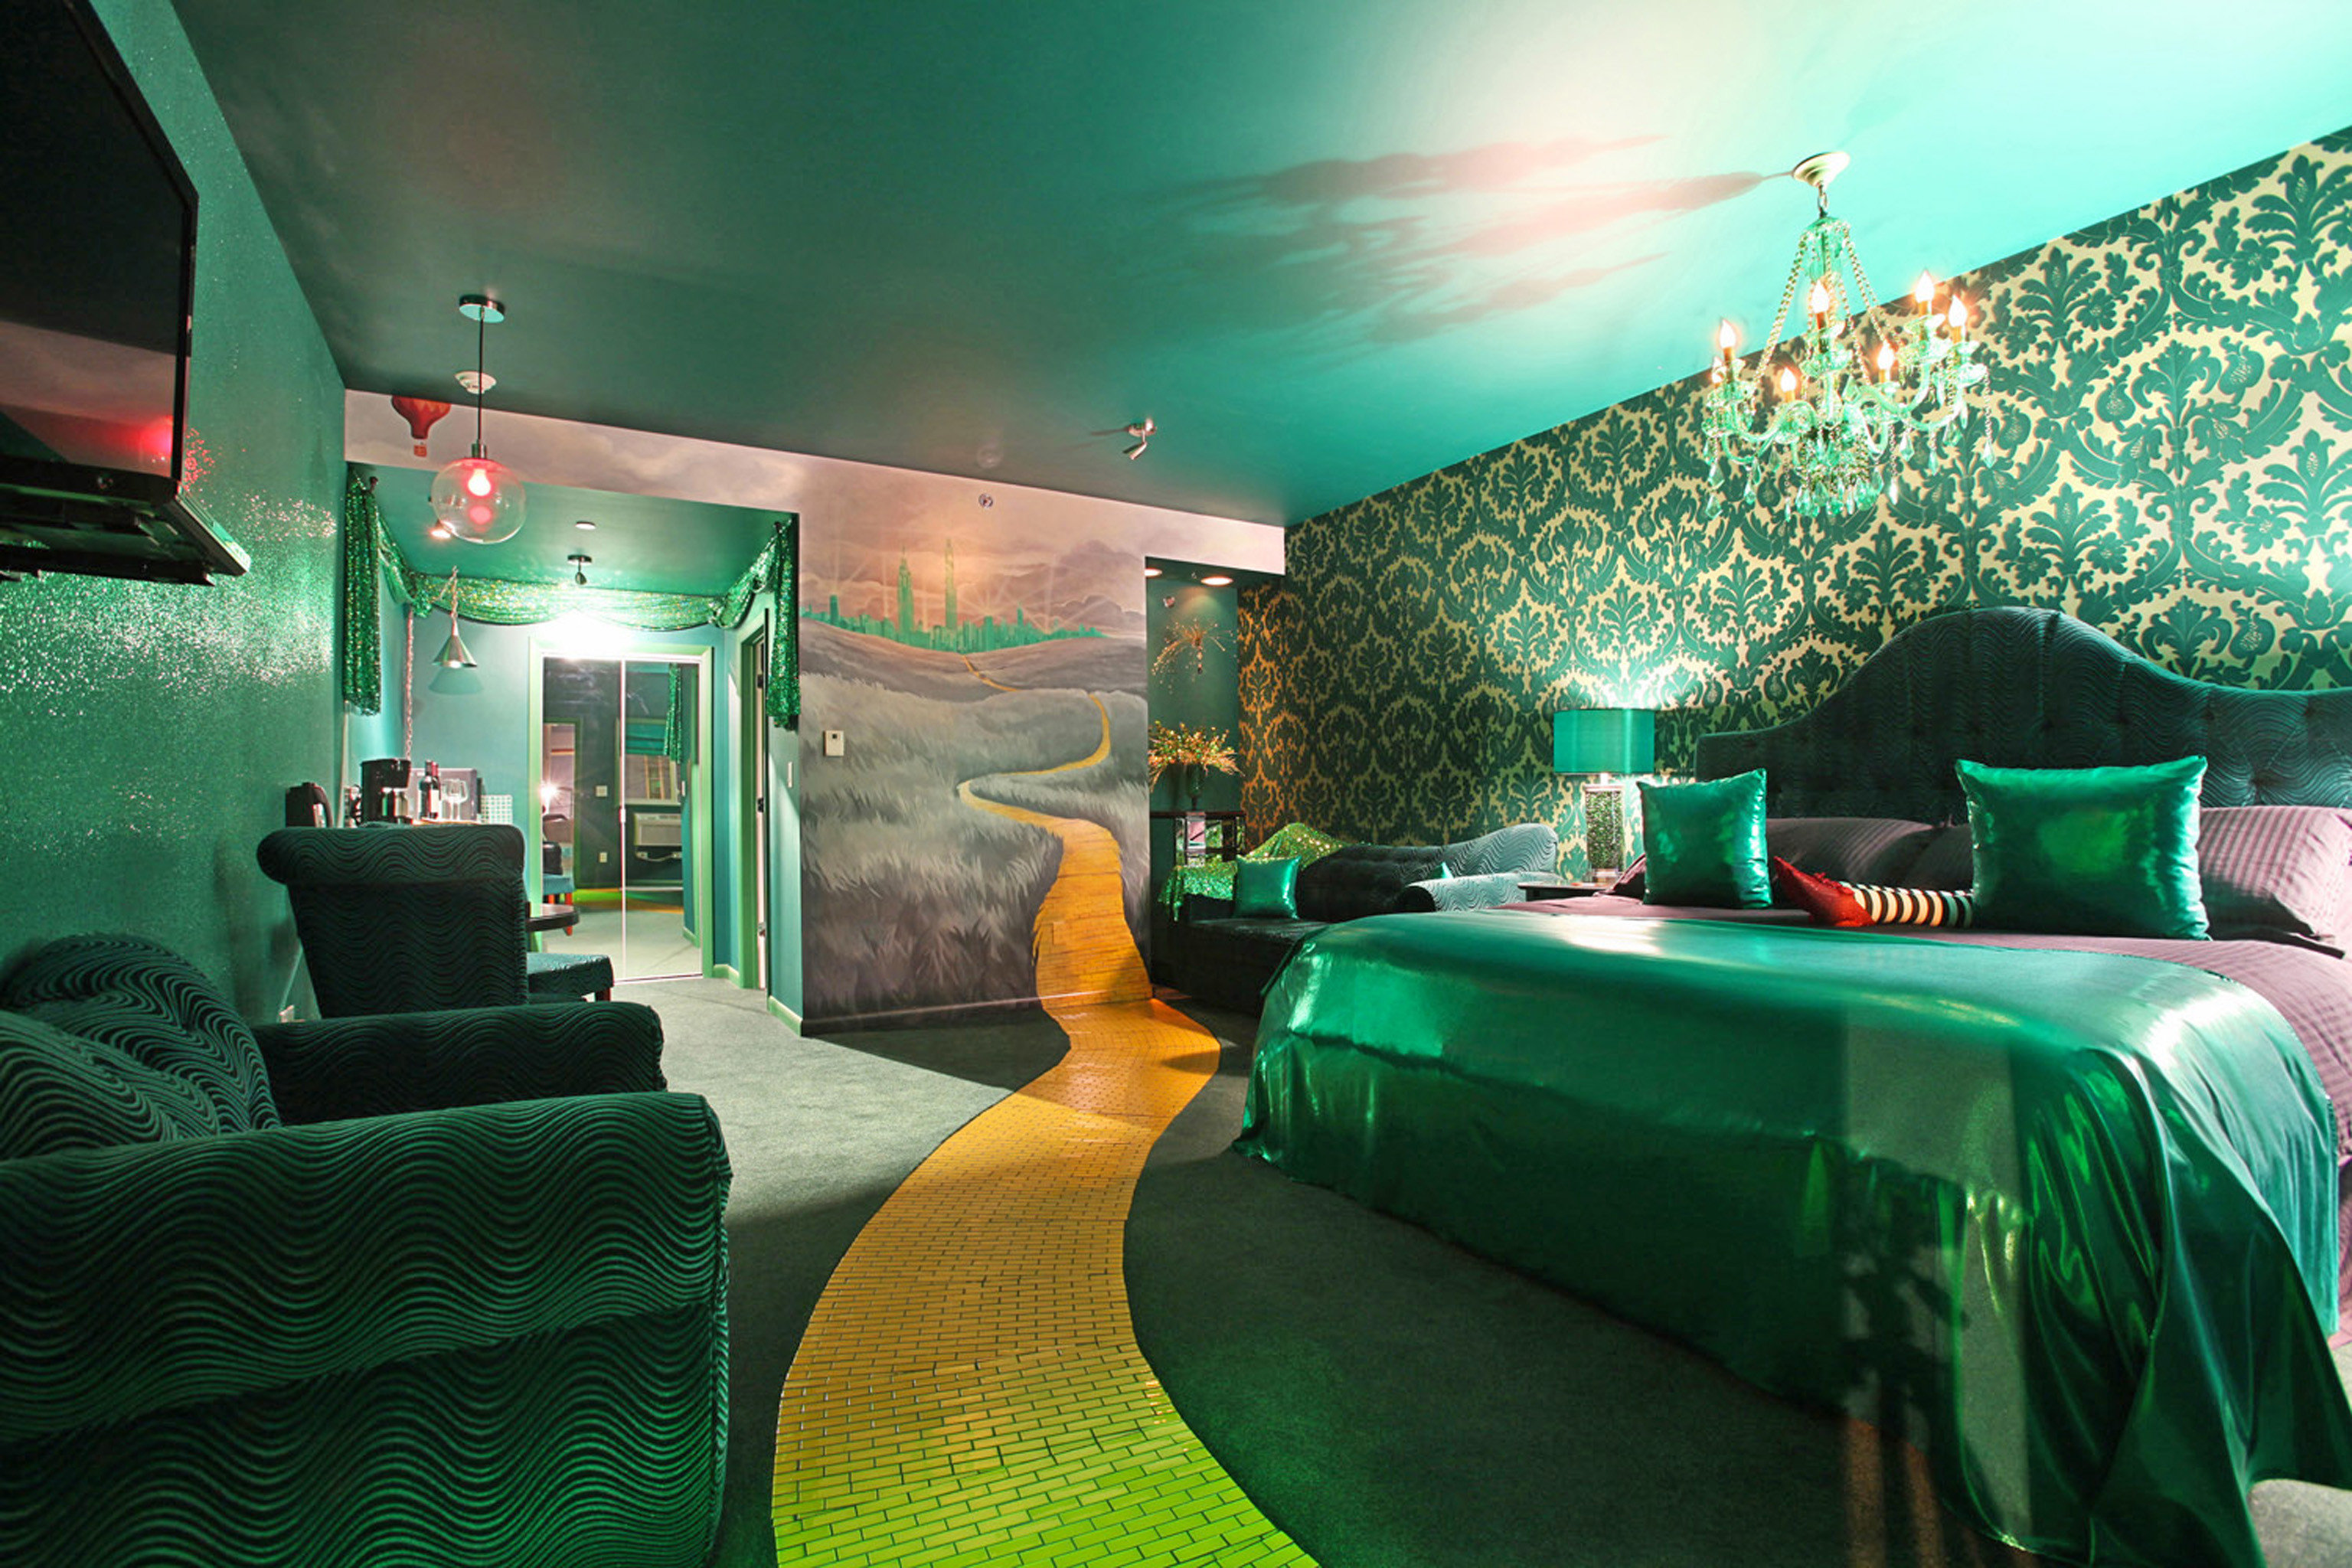 green sofa color restaurant Bar screenshot nightclub colorful bright colored